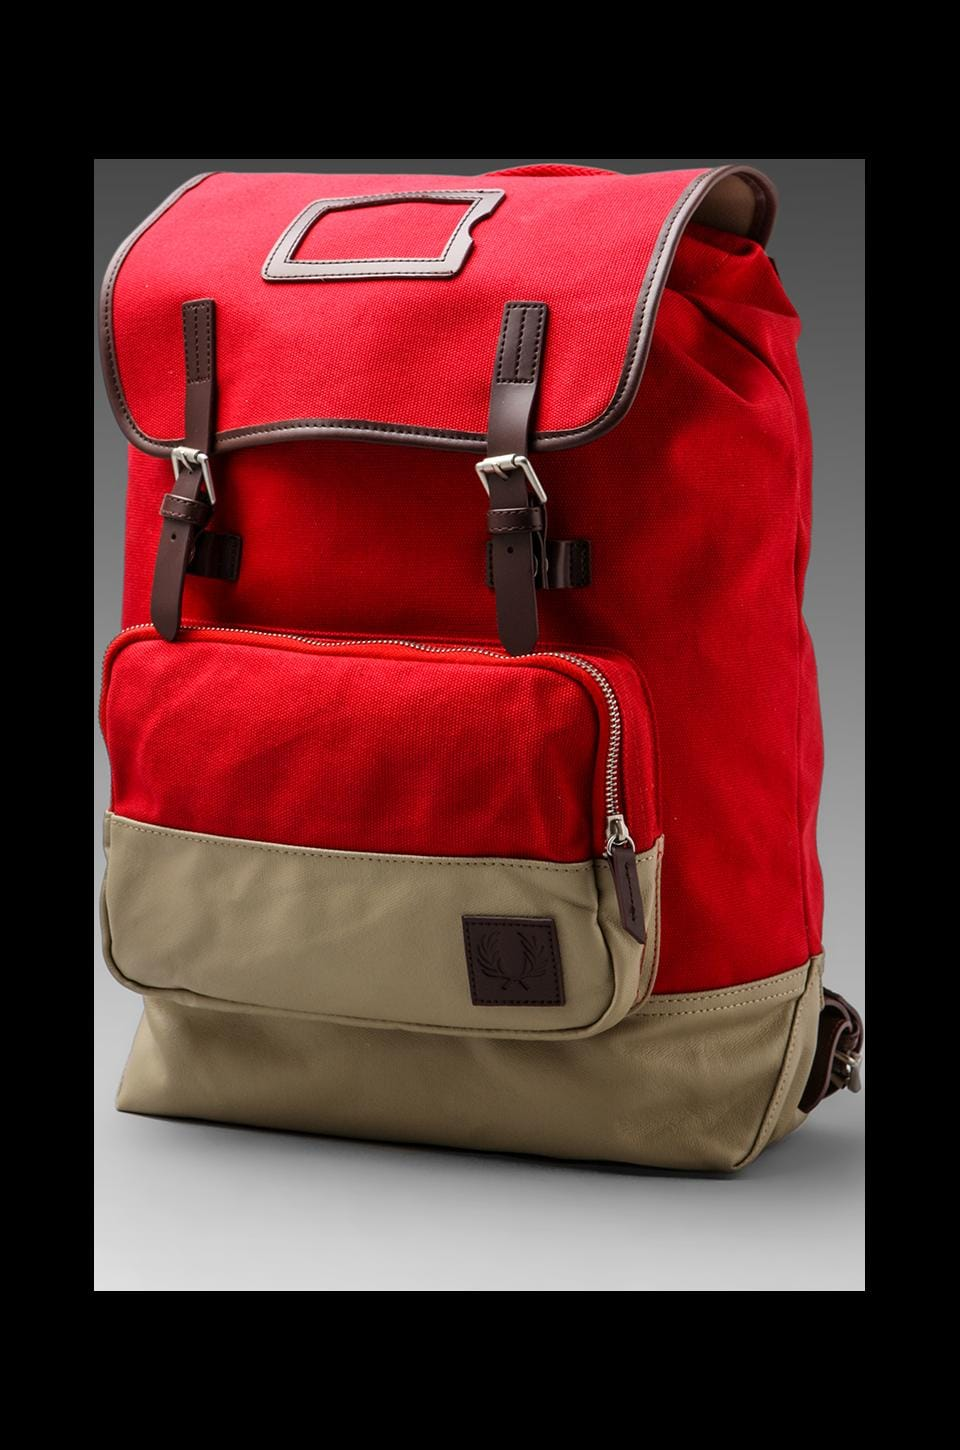 Fred Perry Cotton Rucksack in Blood